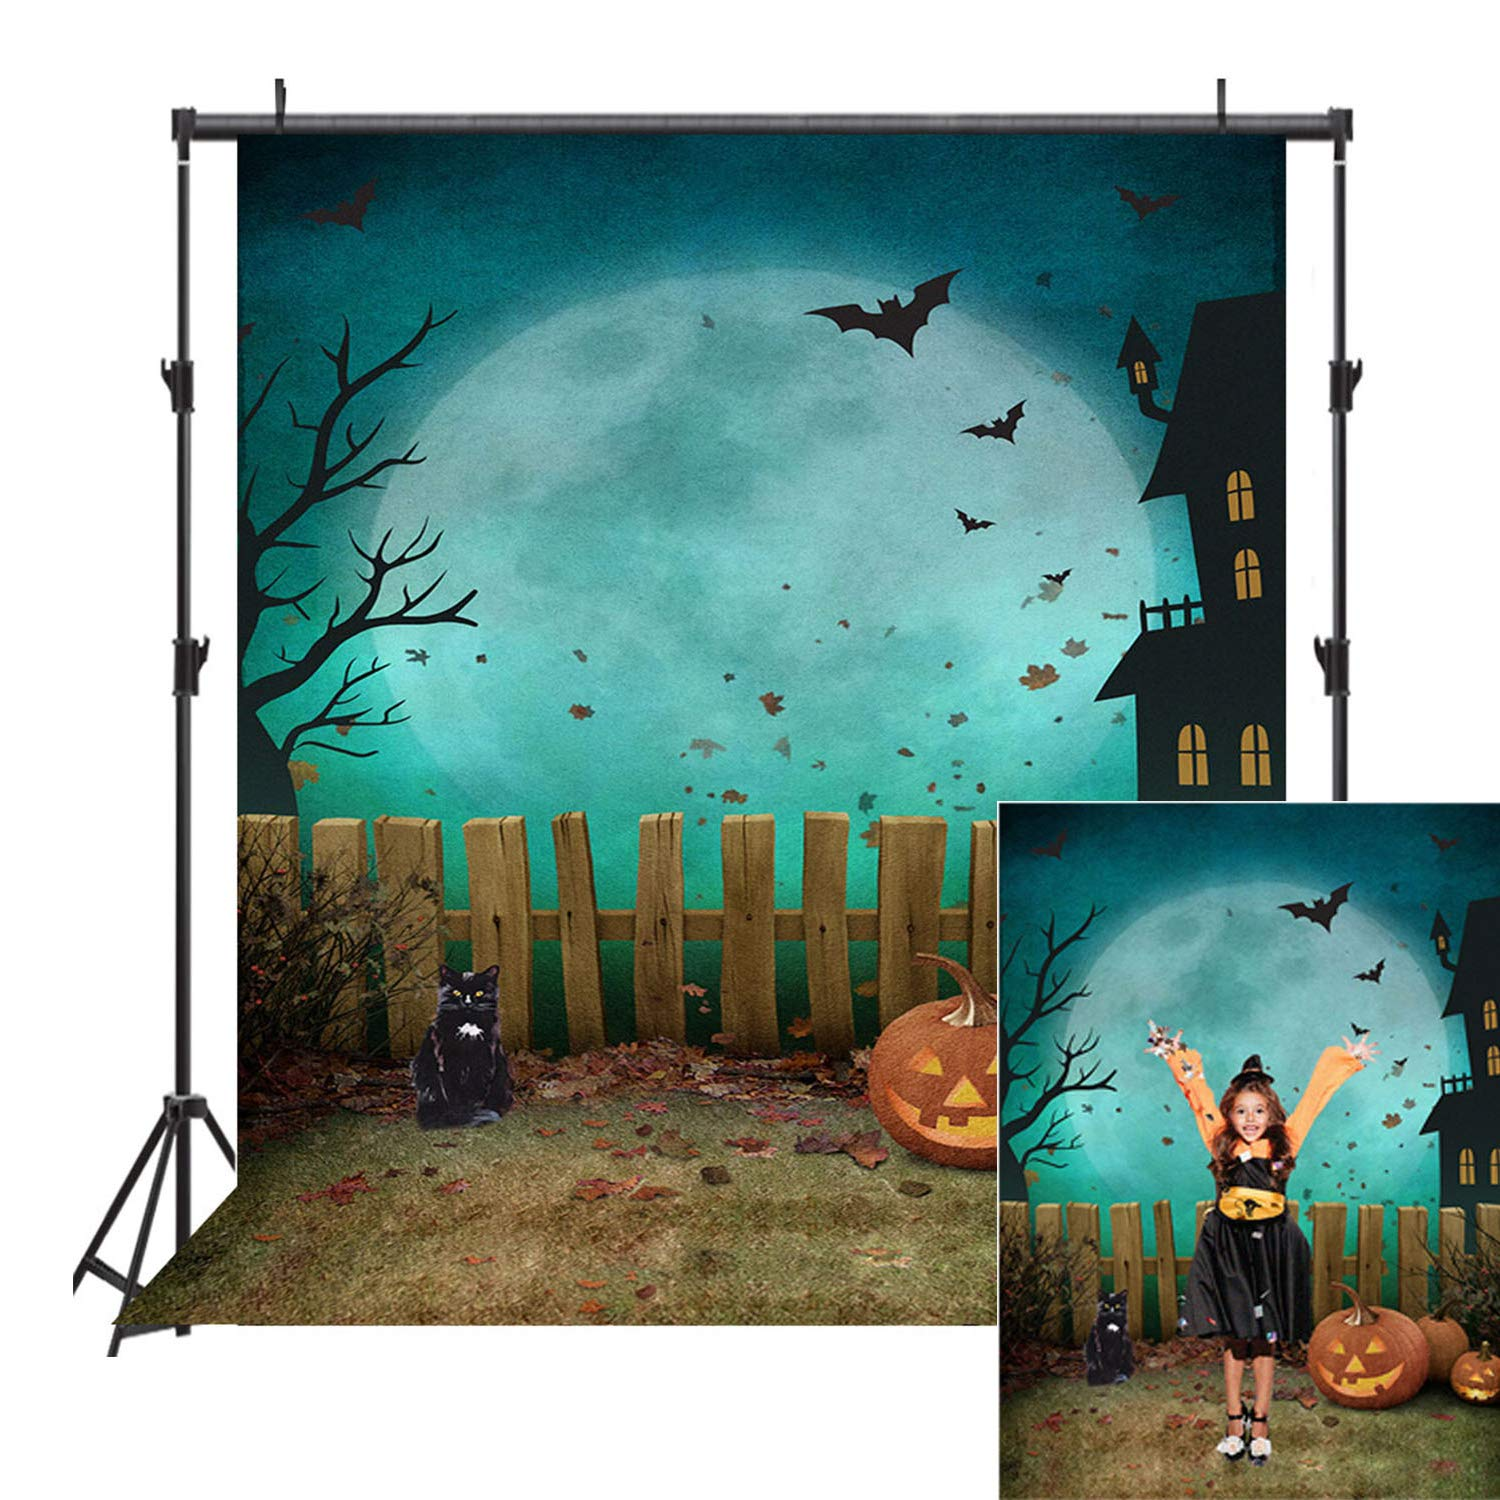 Allenjoy Halloween Theme Backdrop 5x7ft Kid Pumpkin Nightmare Party Photography Background Children Baby Shower Decoration Photography Photo Booth Prop Halloween Decorations Decor Backdrop by Maijoeyy